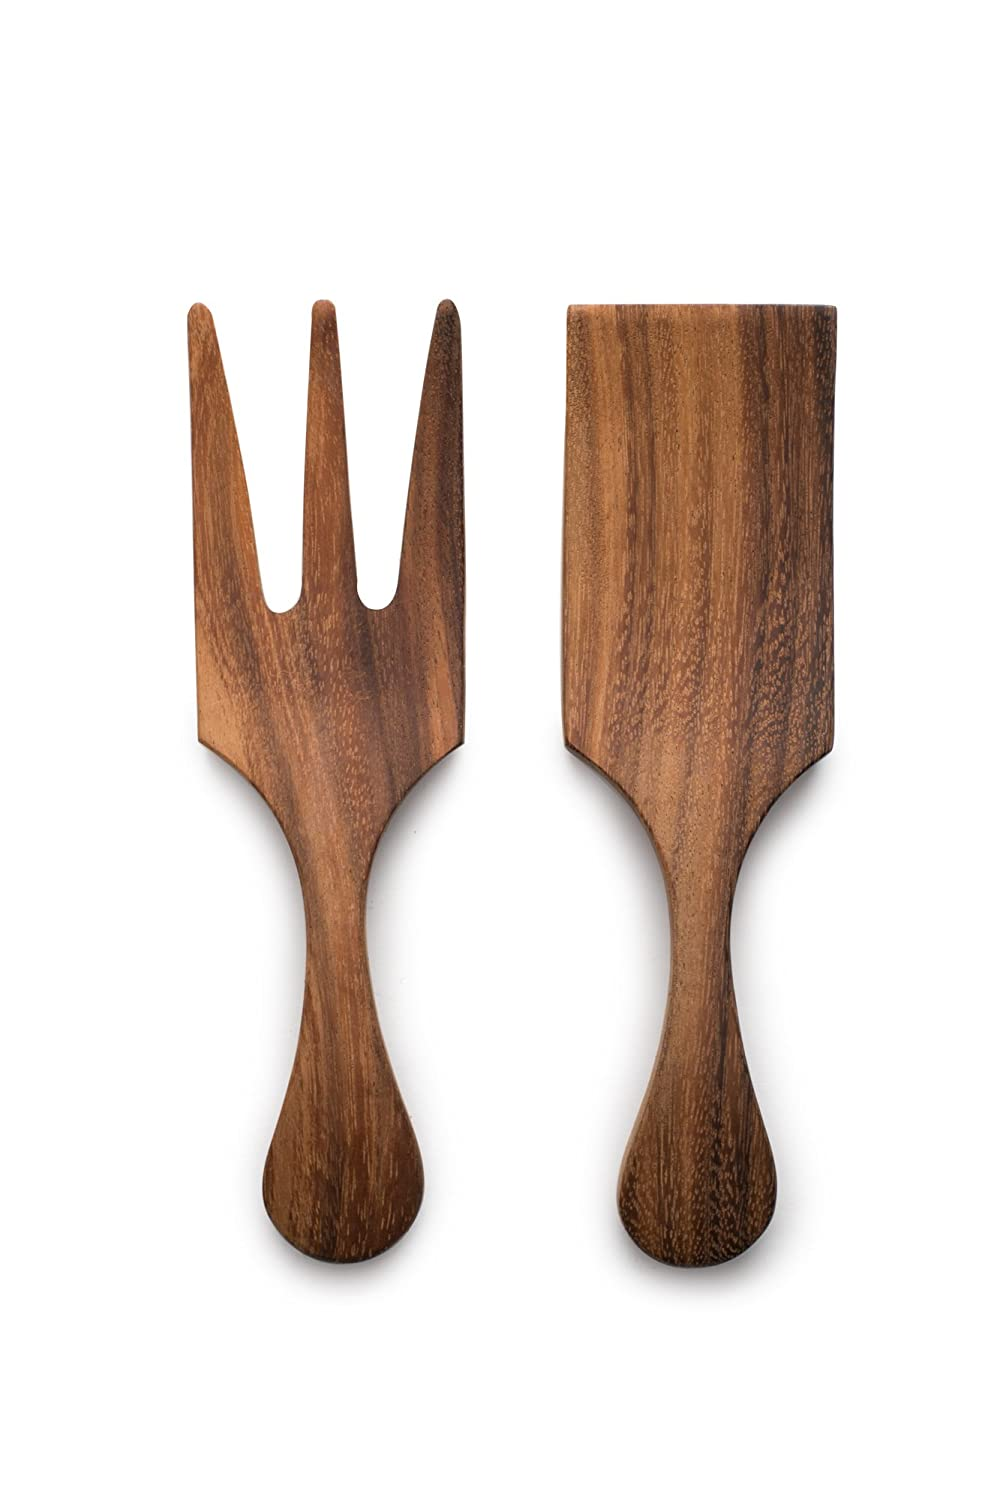 Ironwood Gourmet 28125 Large Salad Utensil Set, Acacia Wood